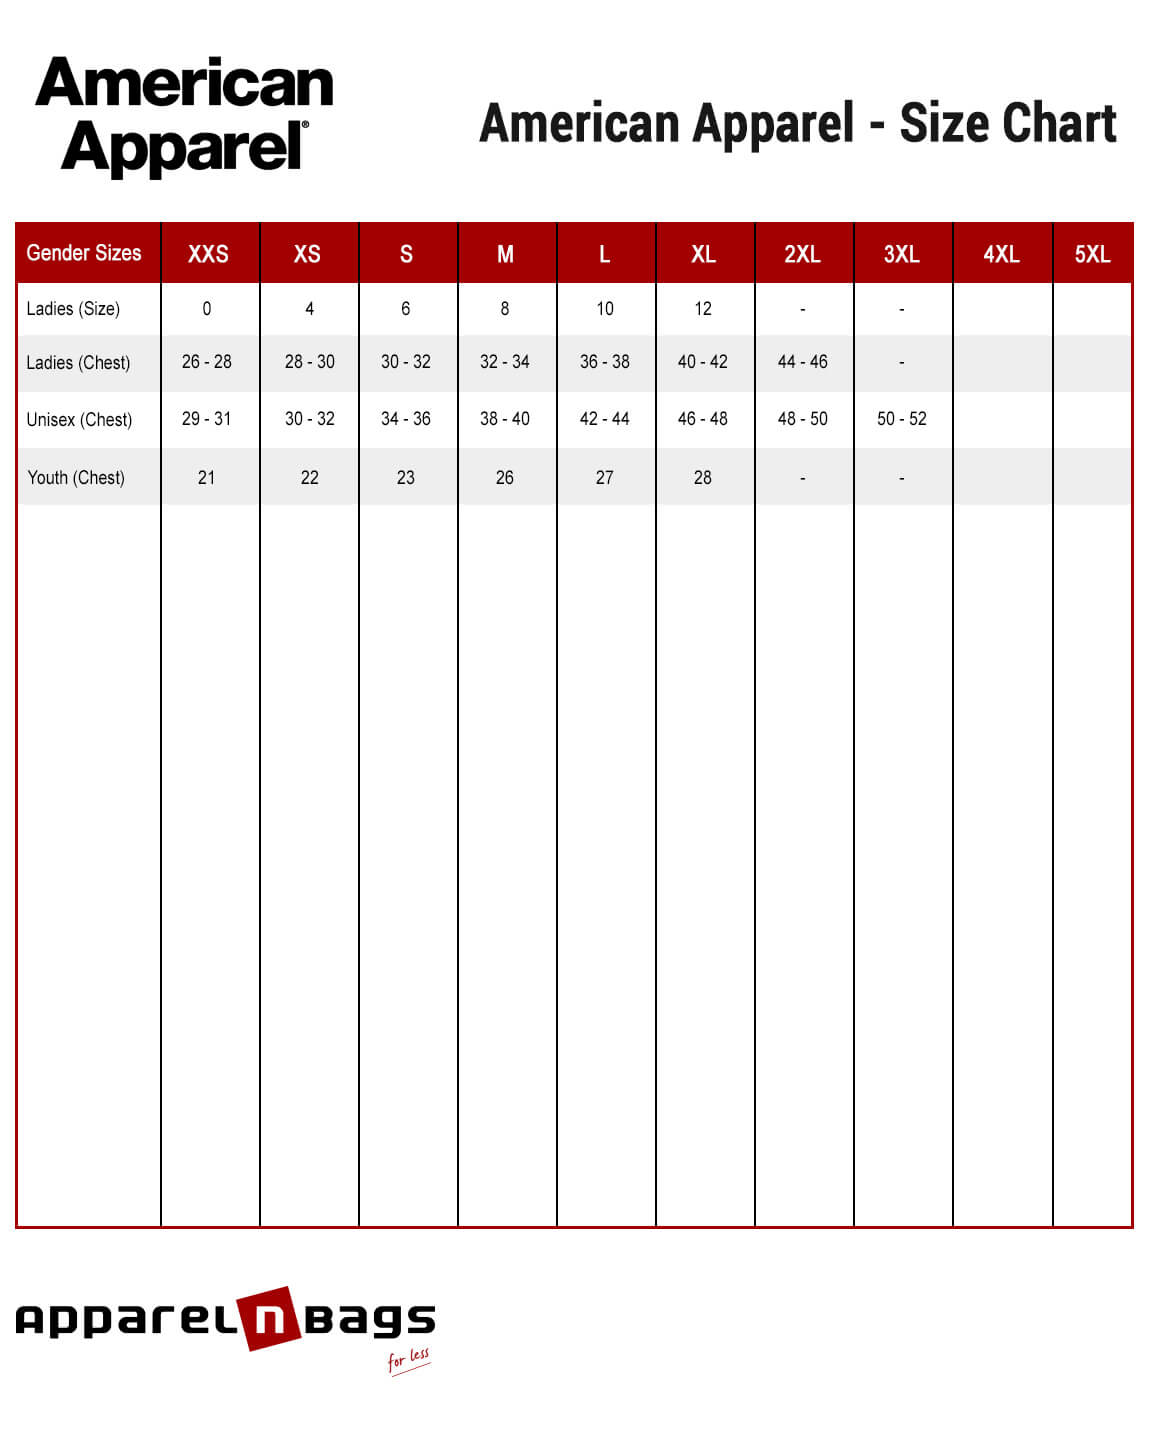 American apparel size chart fit guide and size chart